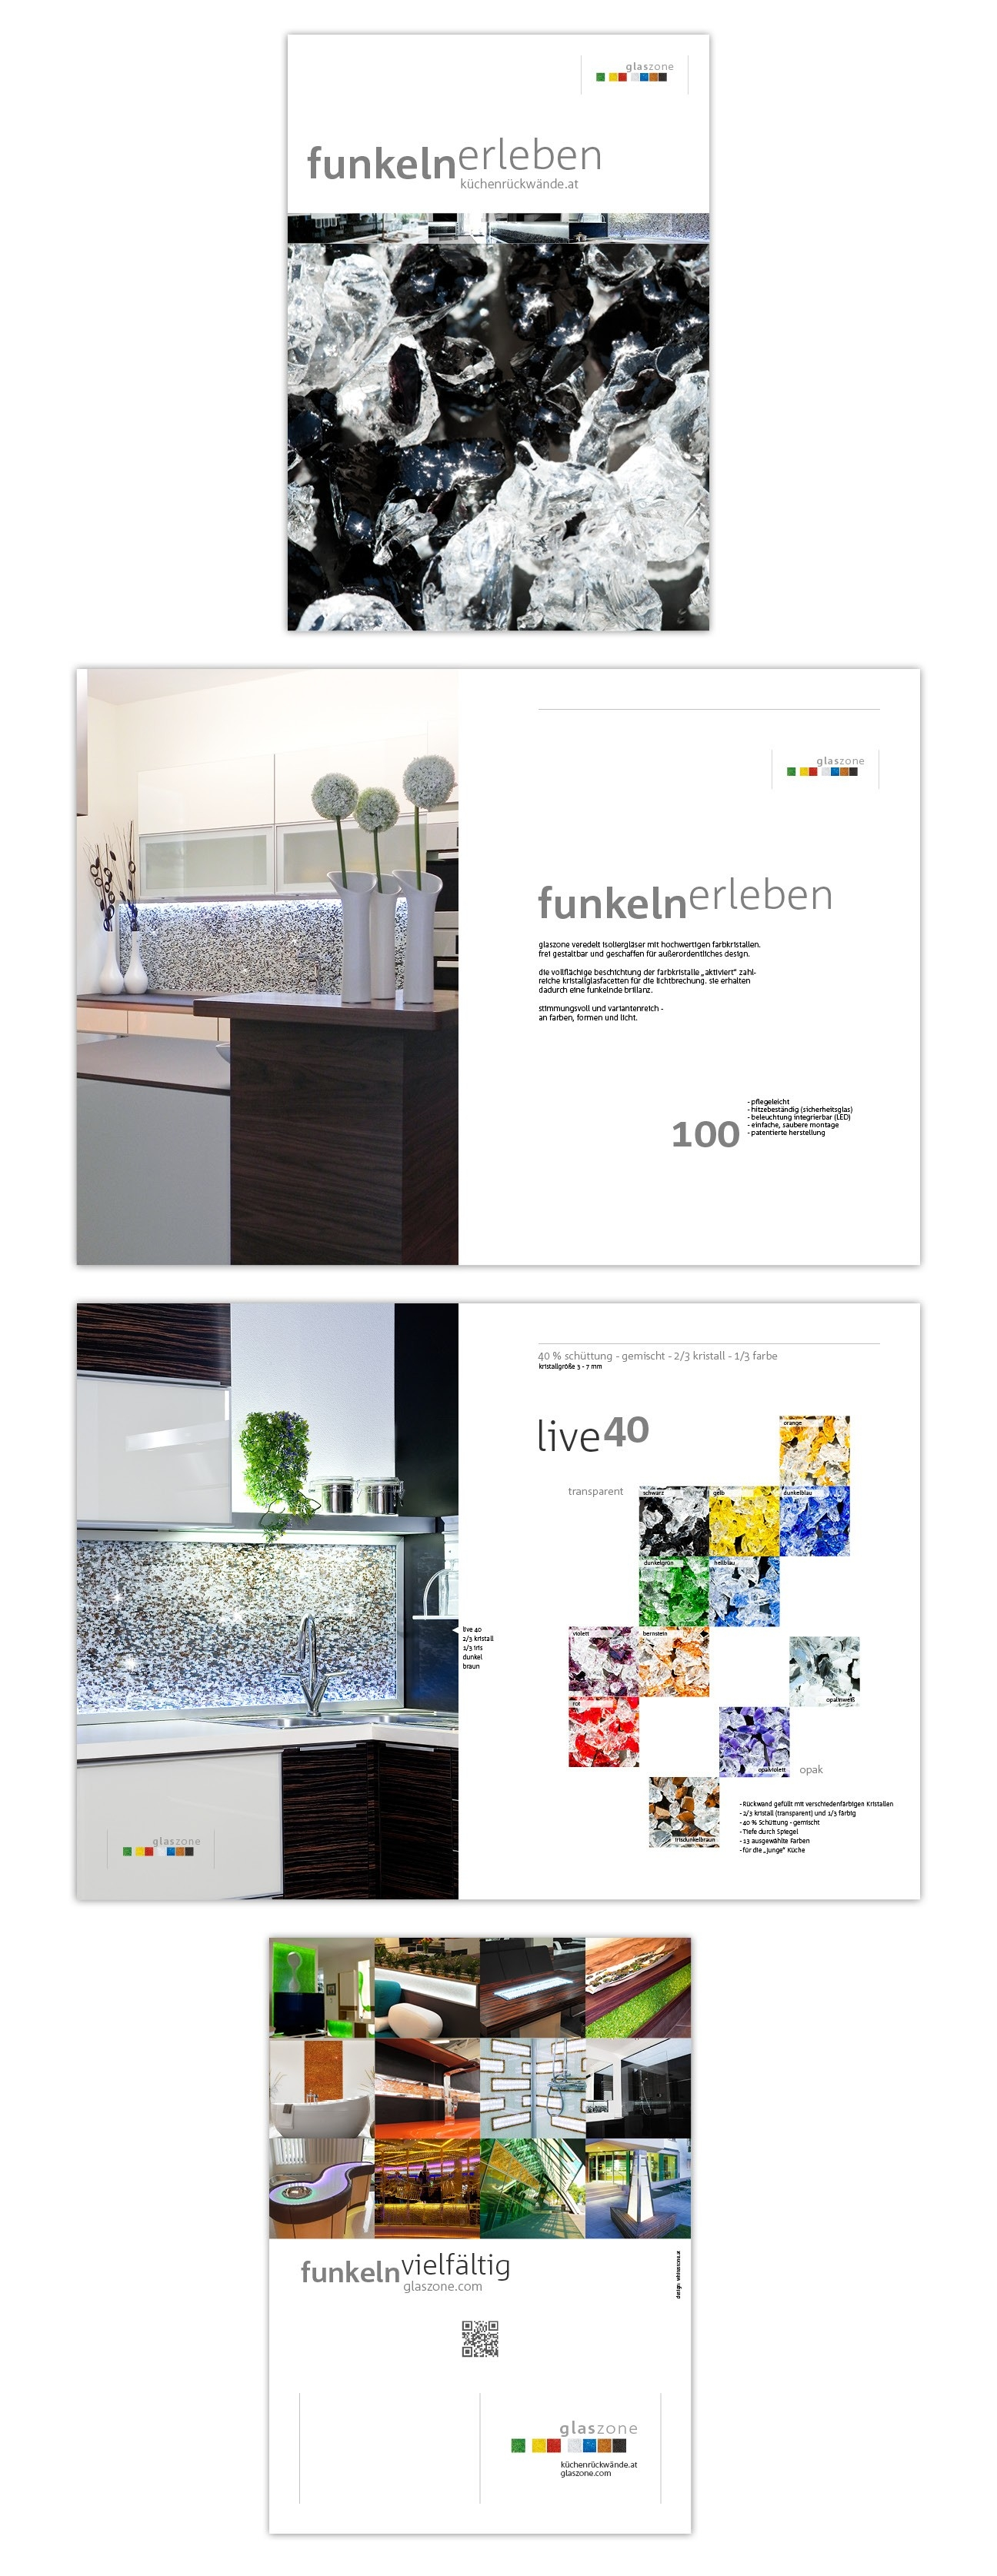 Glaszone Corporate Design Imagefolder